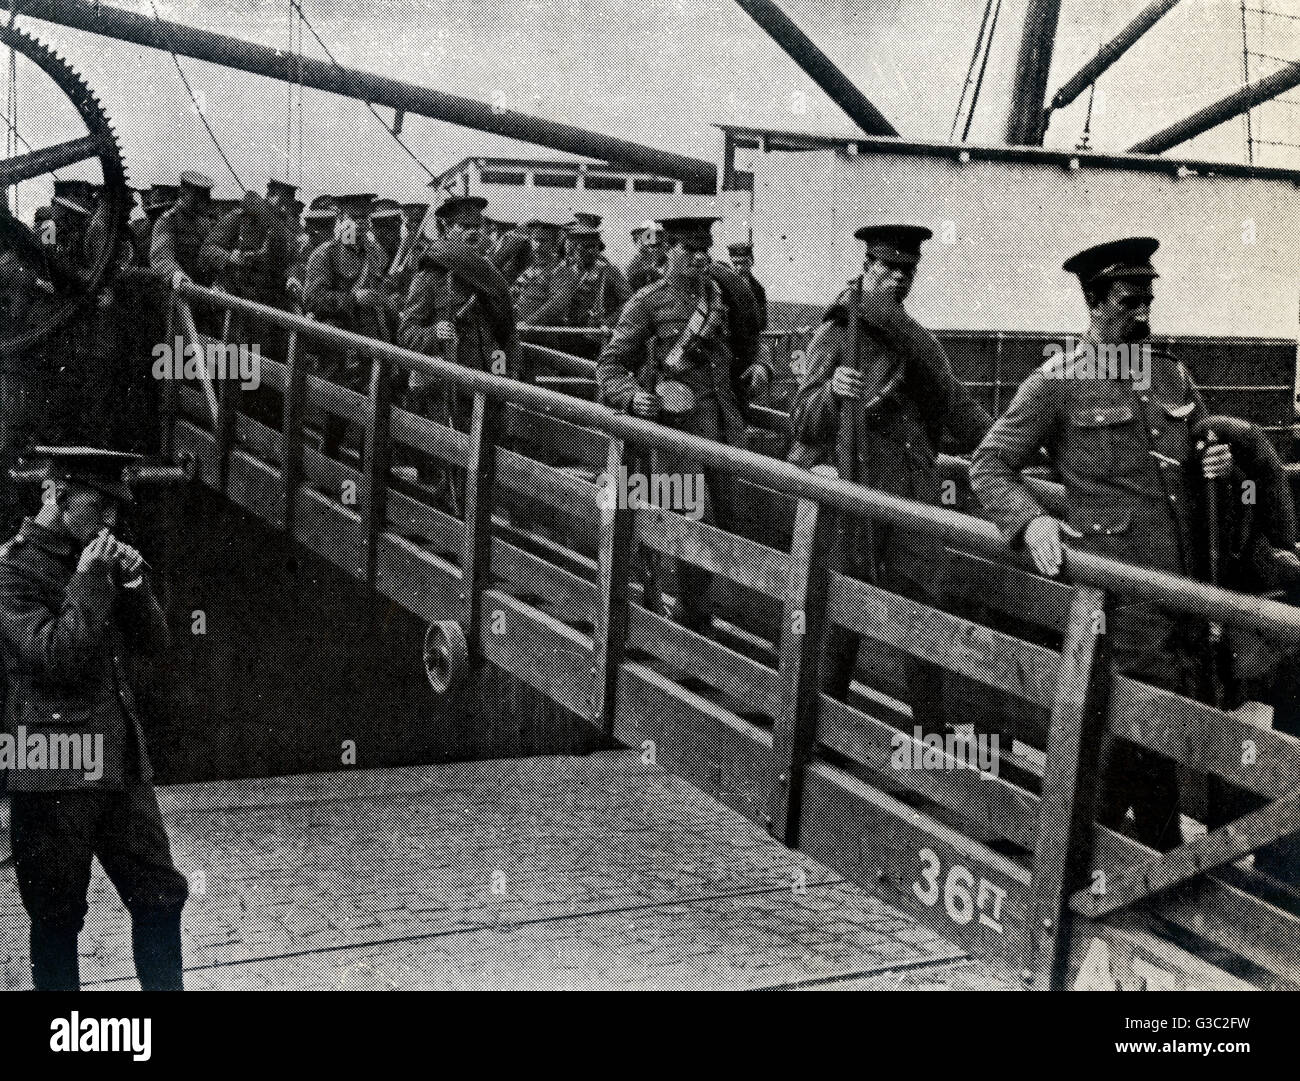 WW1 - British soldiers alight a military transport vessel as they arrive in France.      Date: 1914 - Stock Image